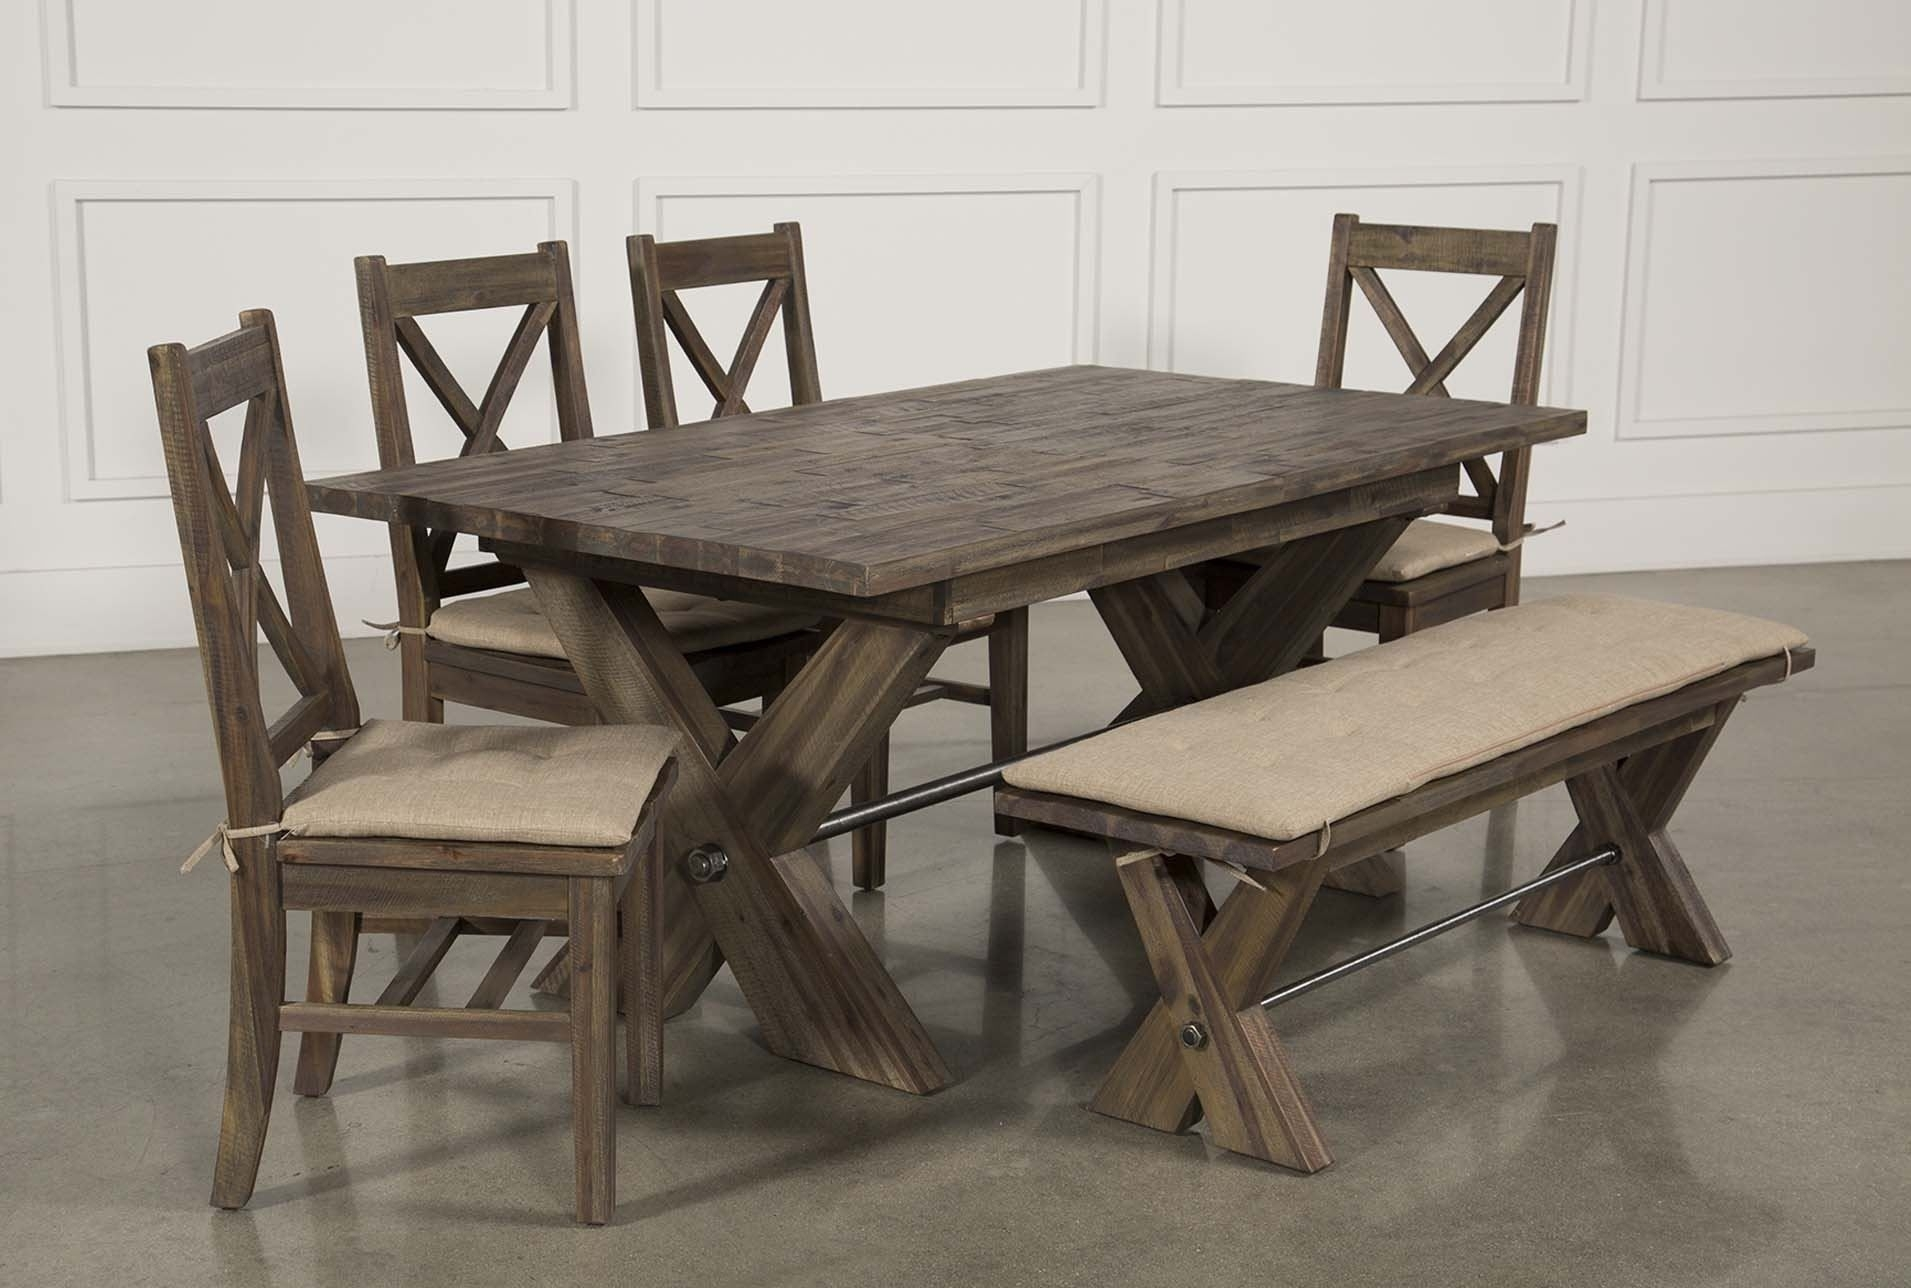 Mallard 6 Piece Extension Dining Set | Fish Project | Pinterest Throughout Most Popular Mallard Extension Dining Tables (View 3 of 20)